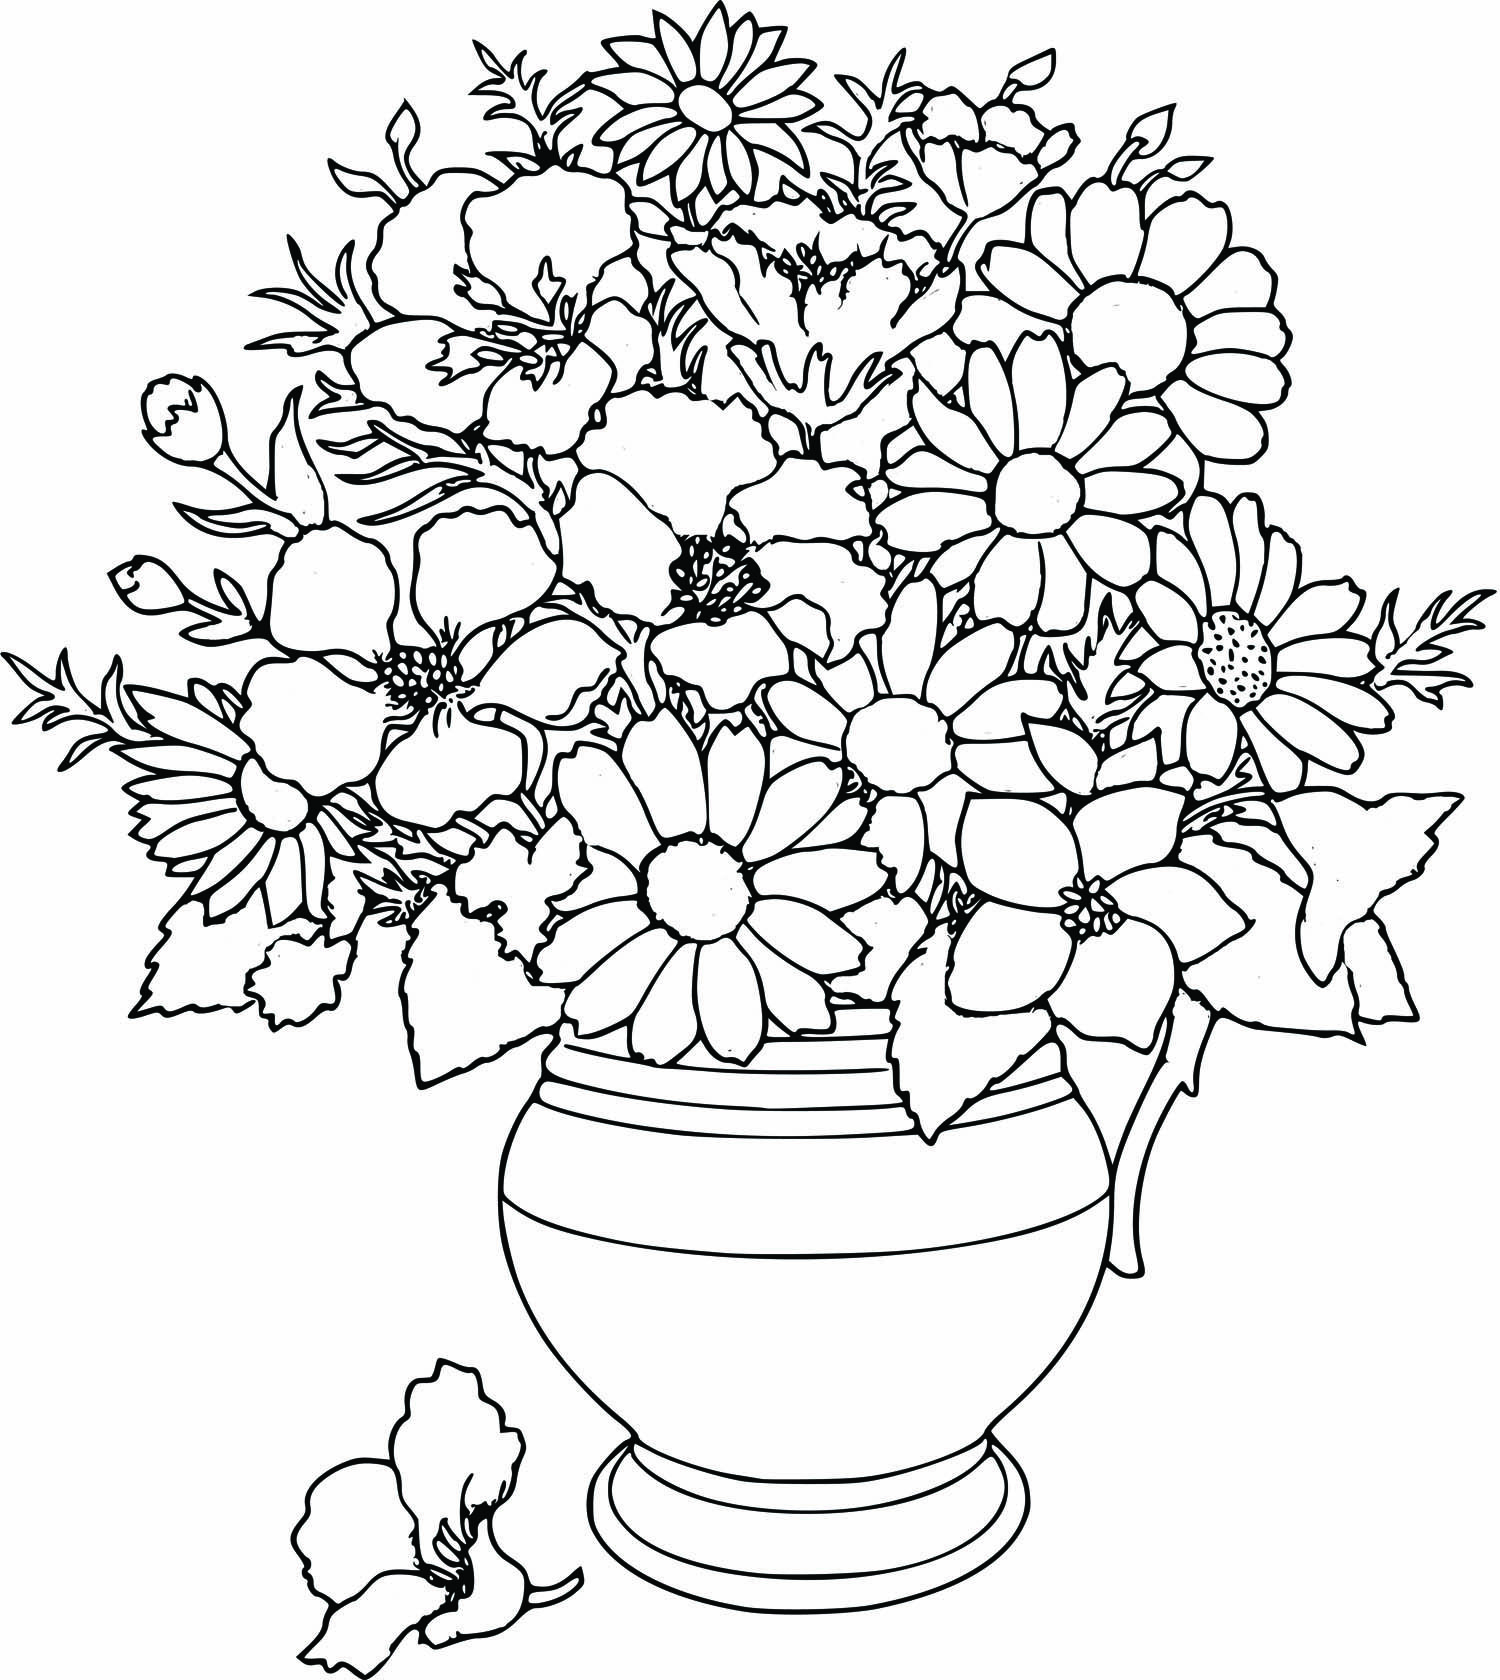 Free Beautifull Flower Coloring Pages | Coloring Pages | Pinterest ...